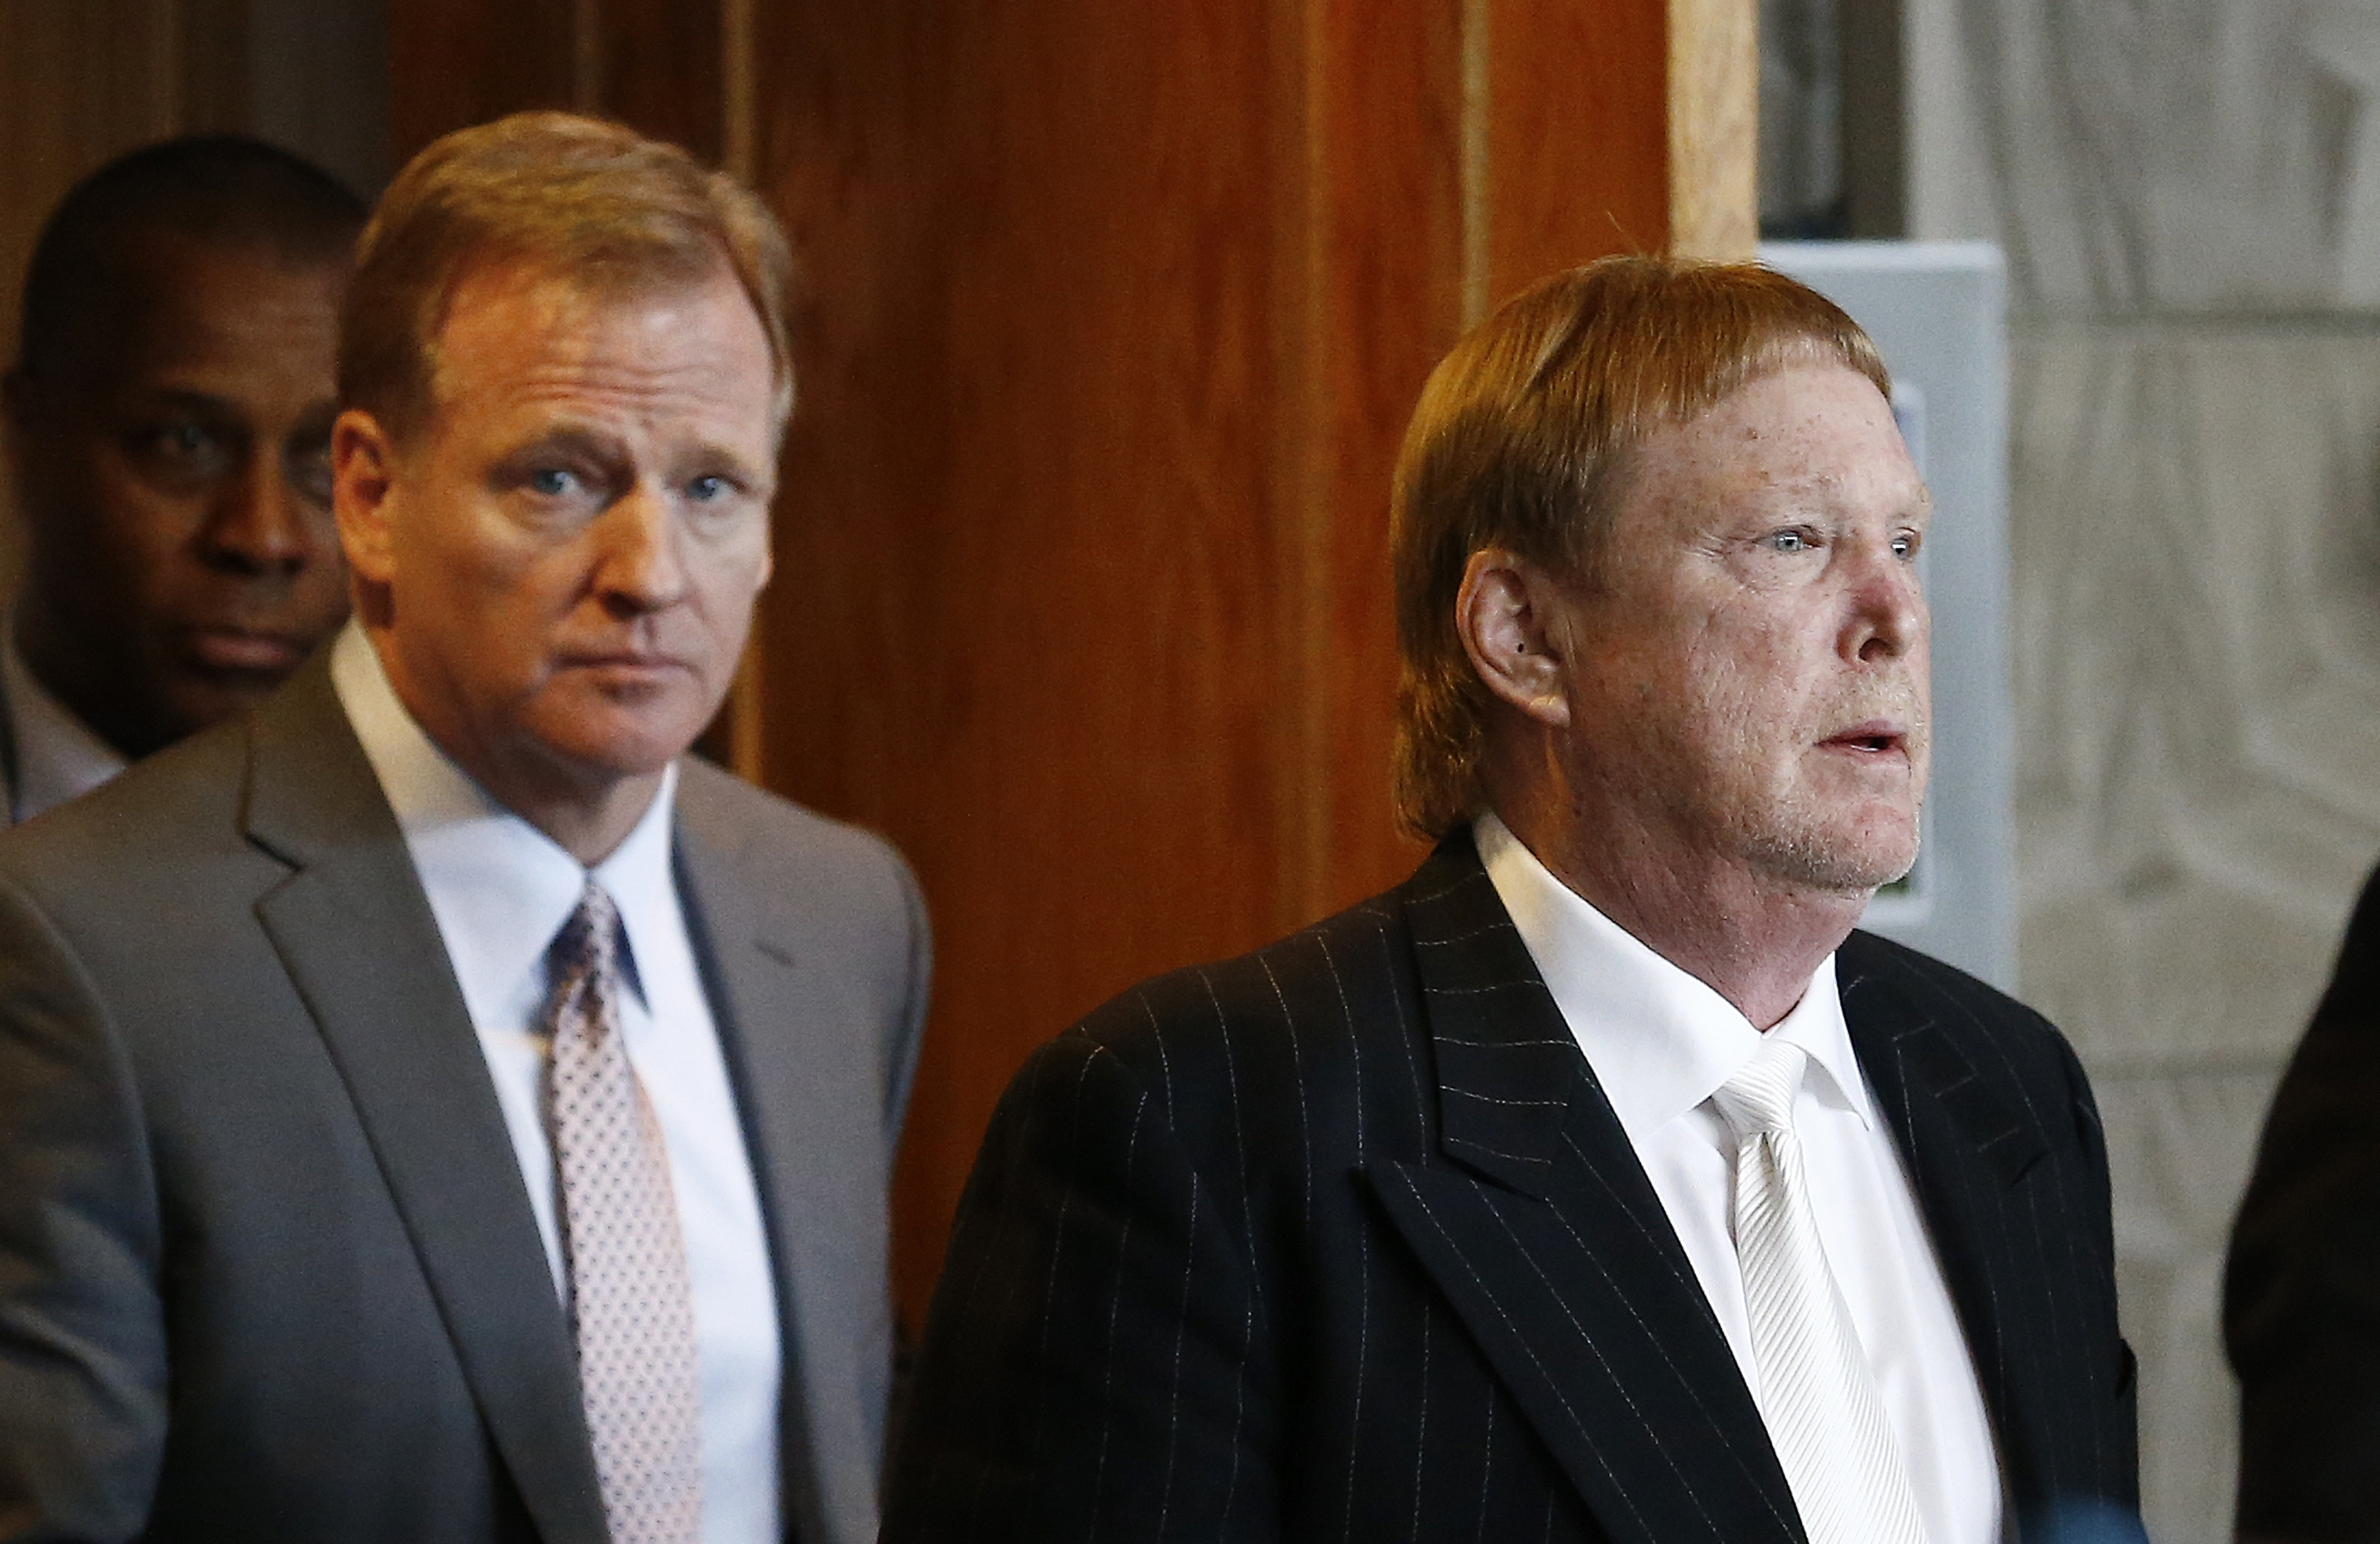 Oakland Raiders owner Mark Davis right emerges from the NFL football annual meetings with NFL Commissioner Roger Goodell left after owners approved the move of the Raiders to Las Vegas Monday